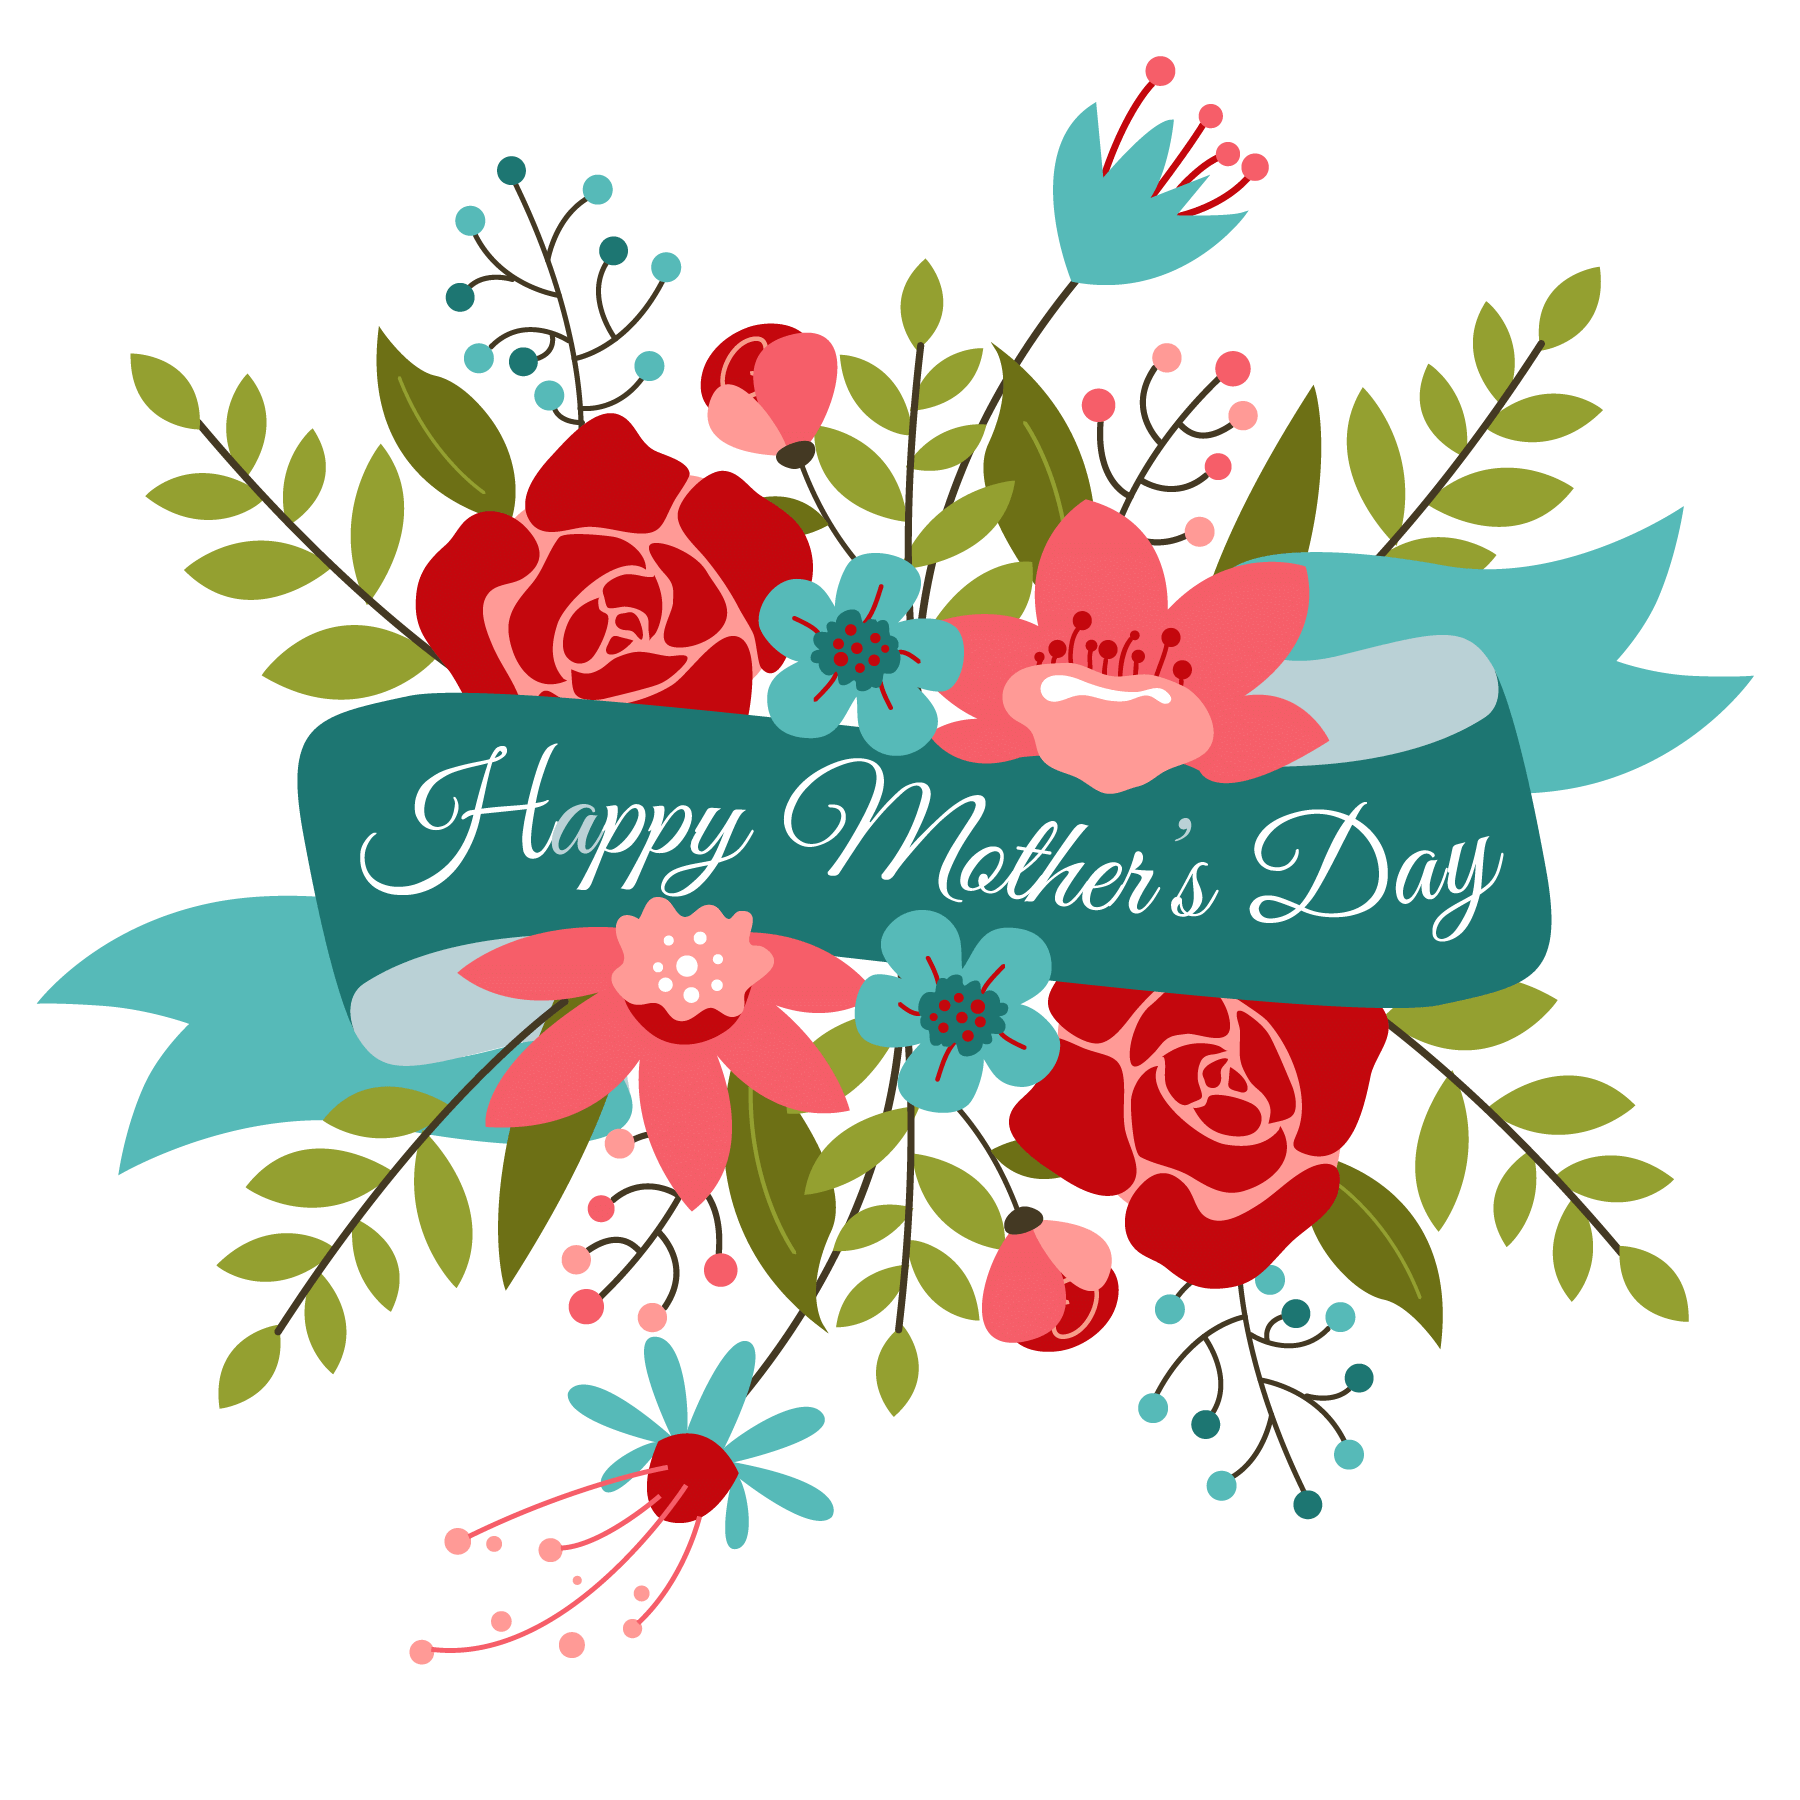 Happy Mothers Day Clipart | Free download best Happy ...